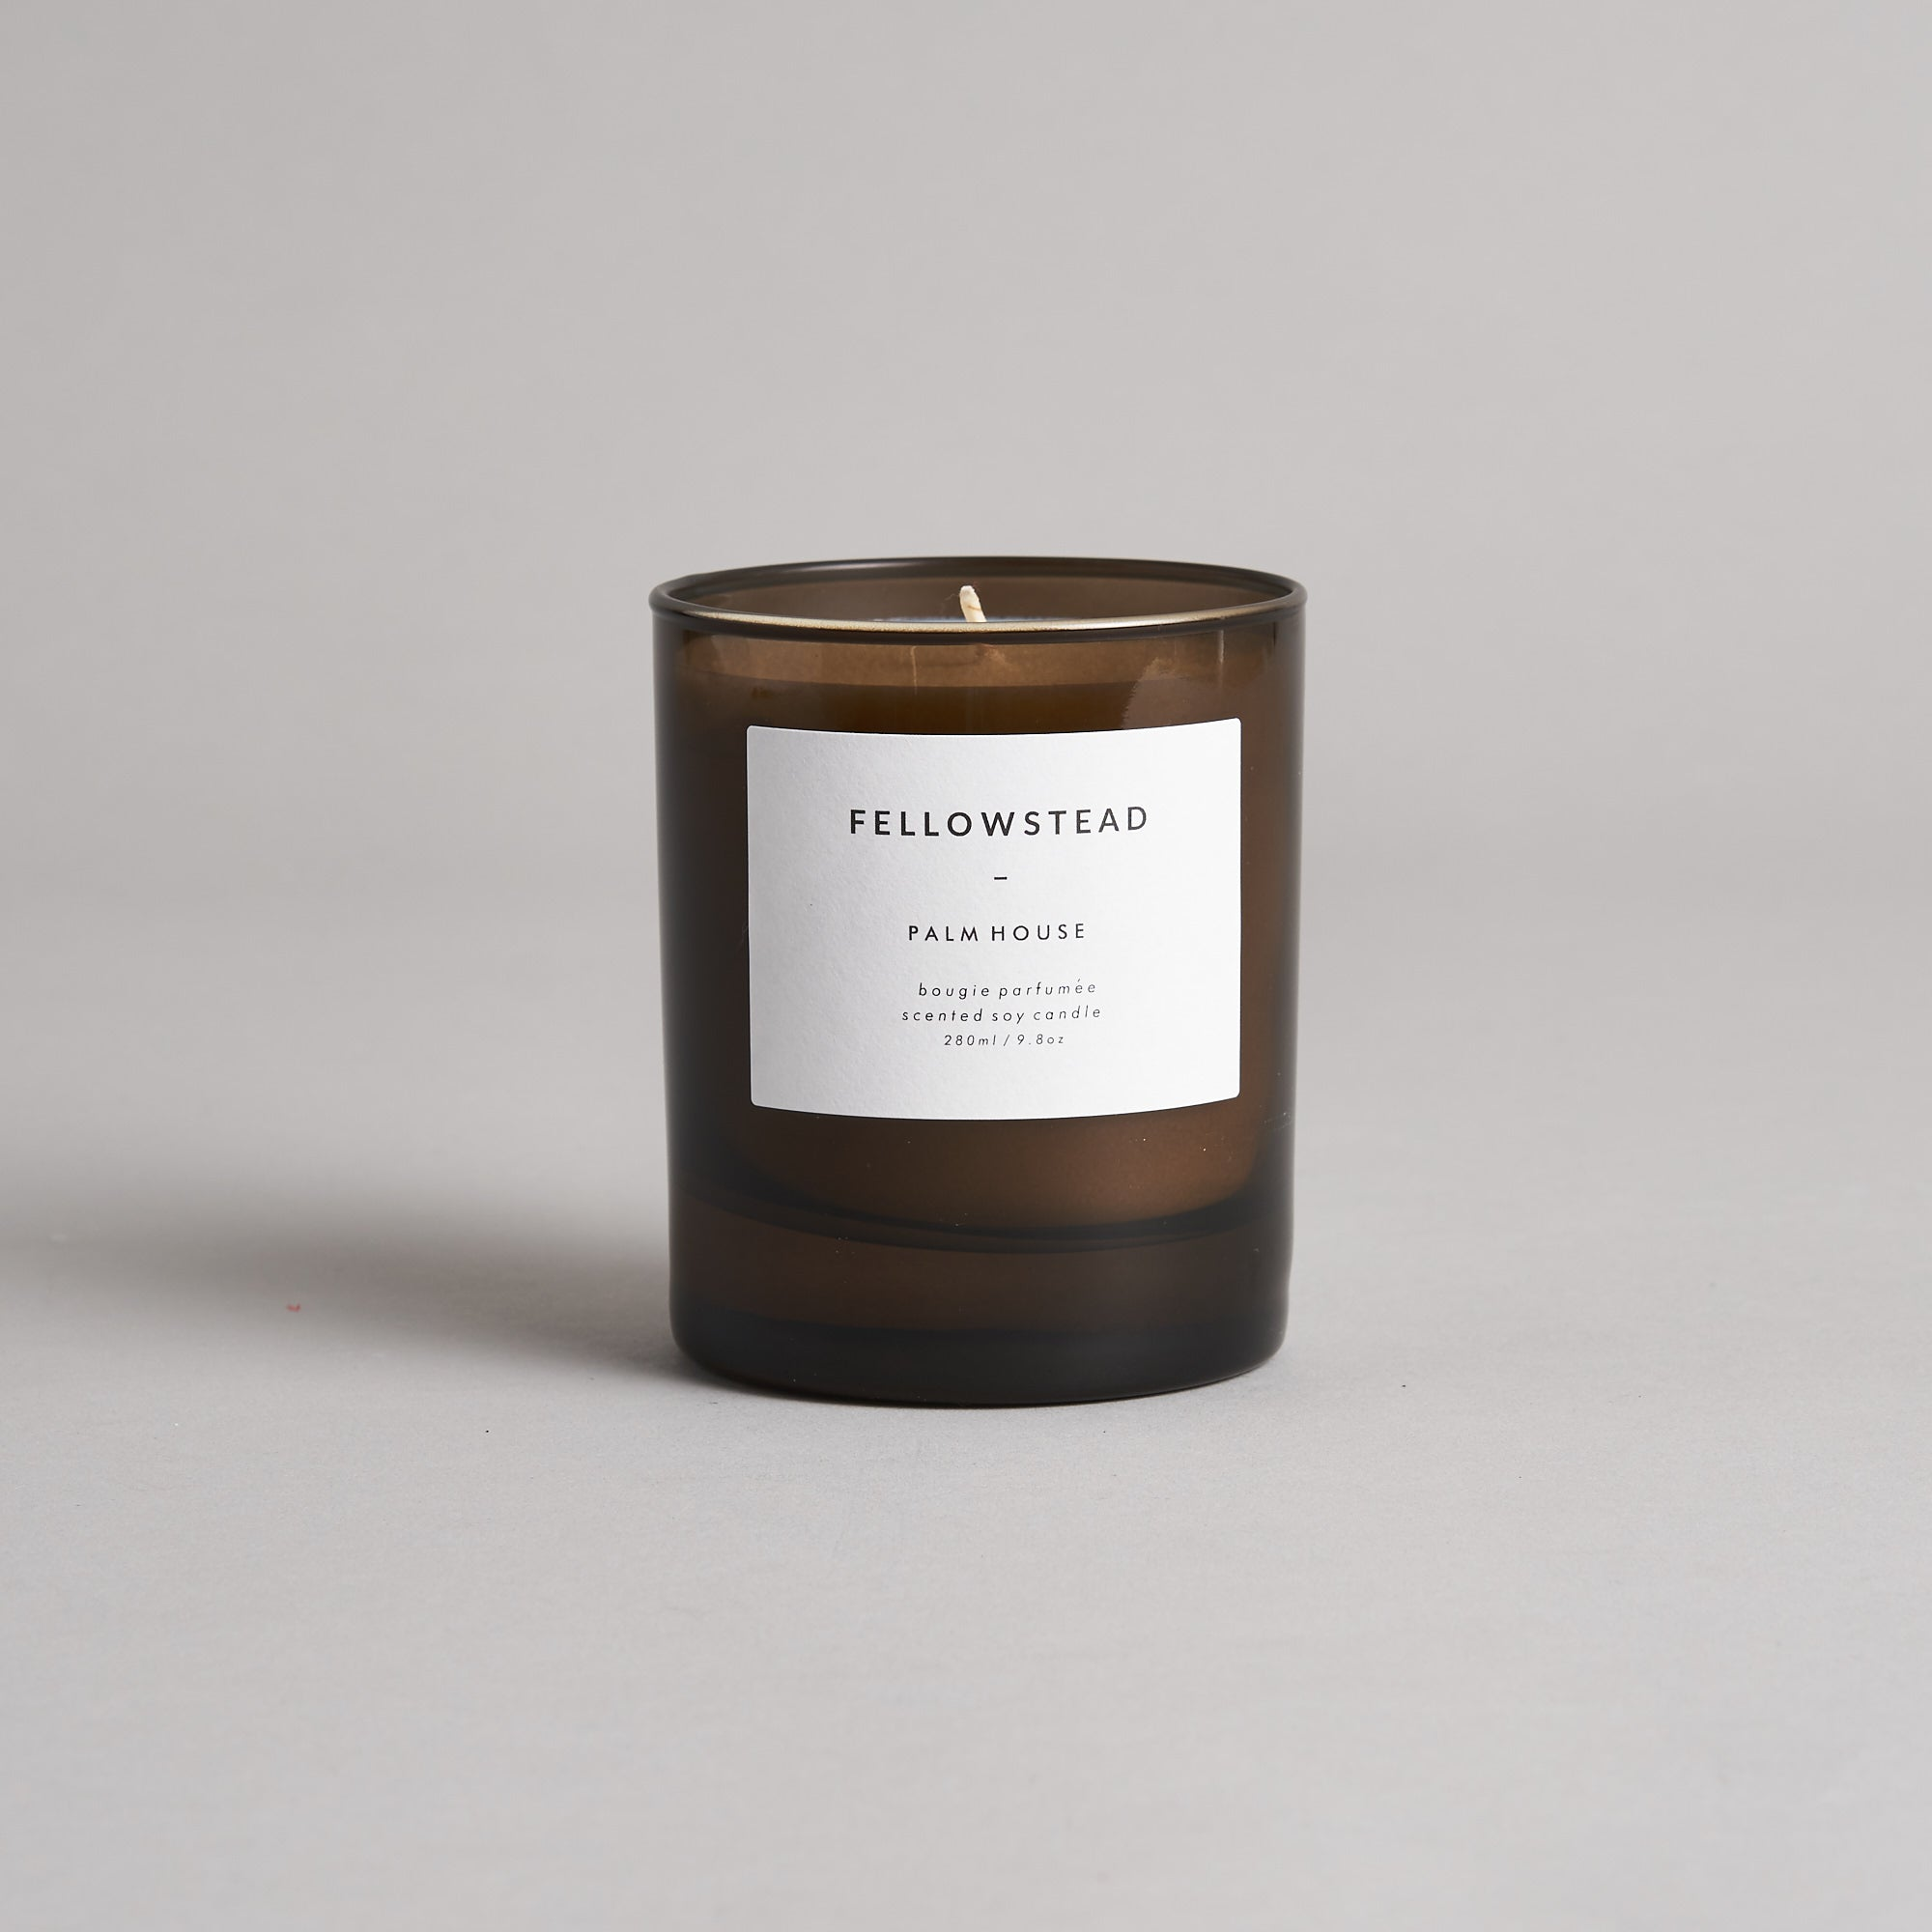 Palm House Soy Candle by Fellowstead